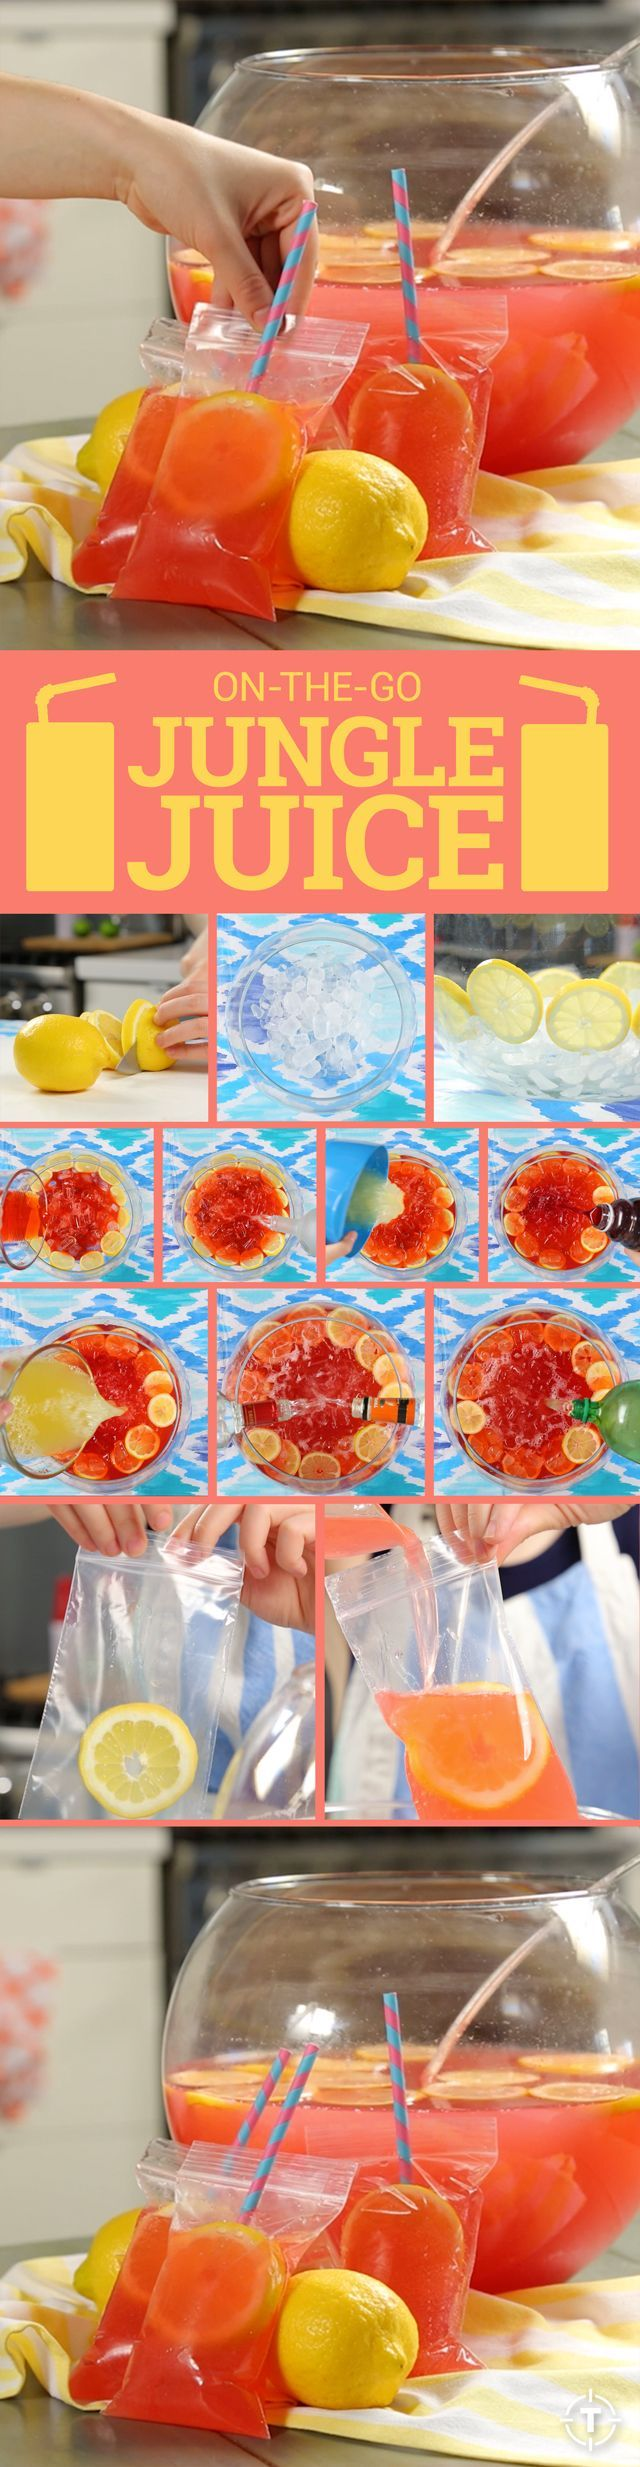 how to make jungle juice with hawaiian punch